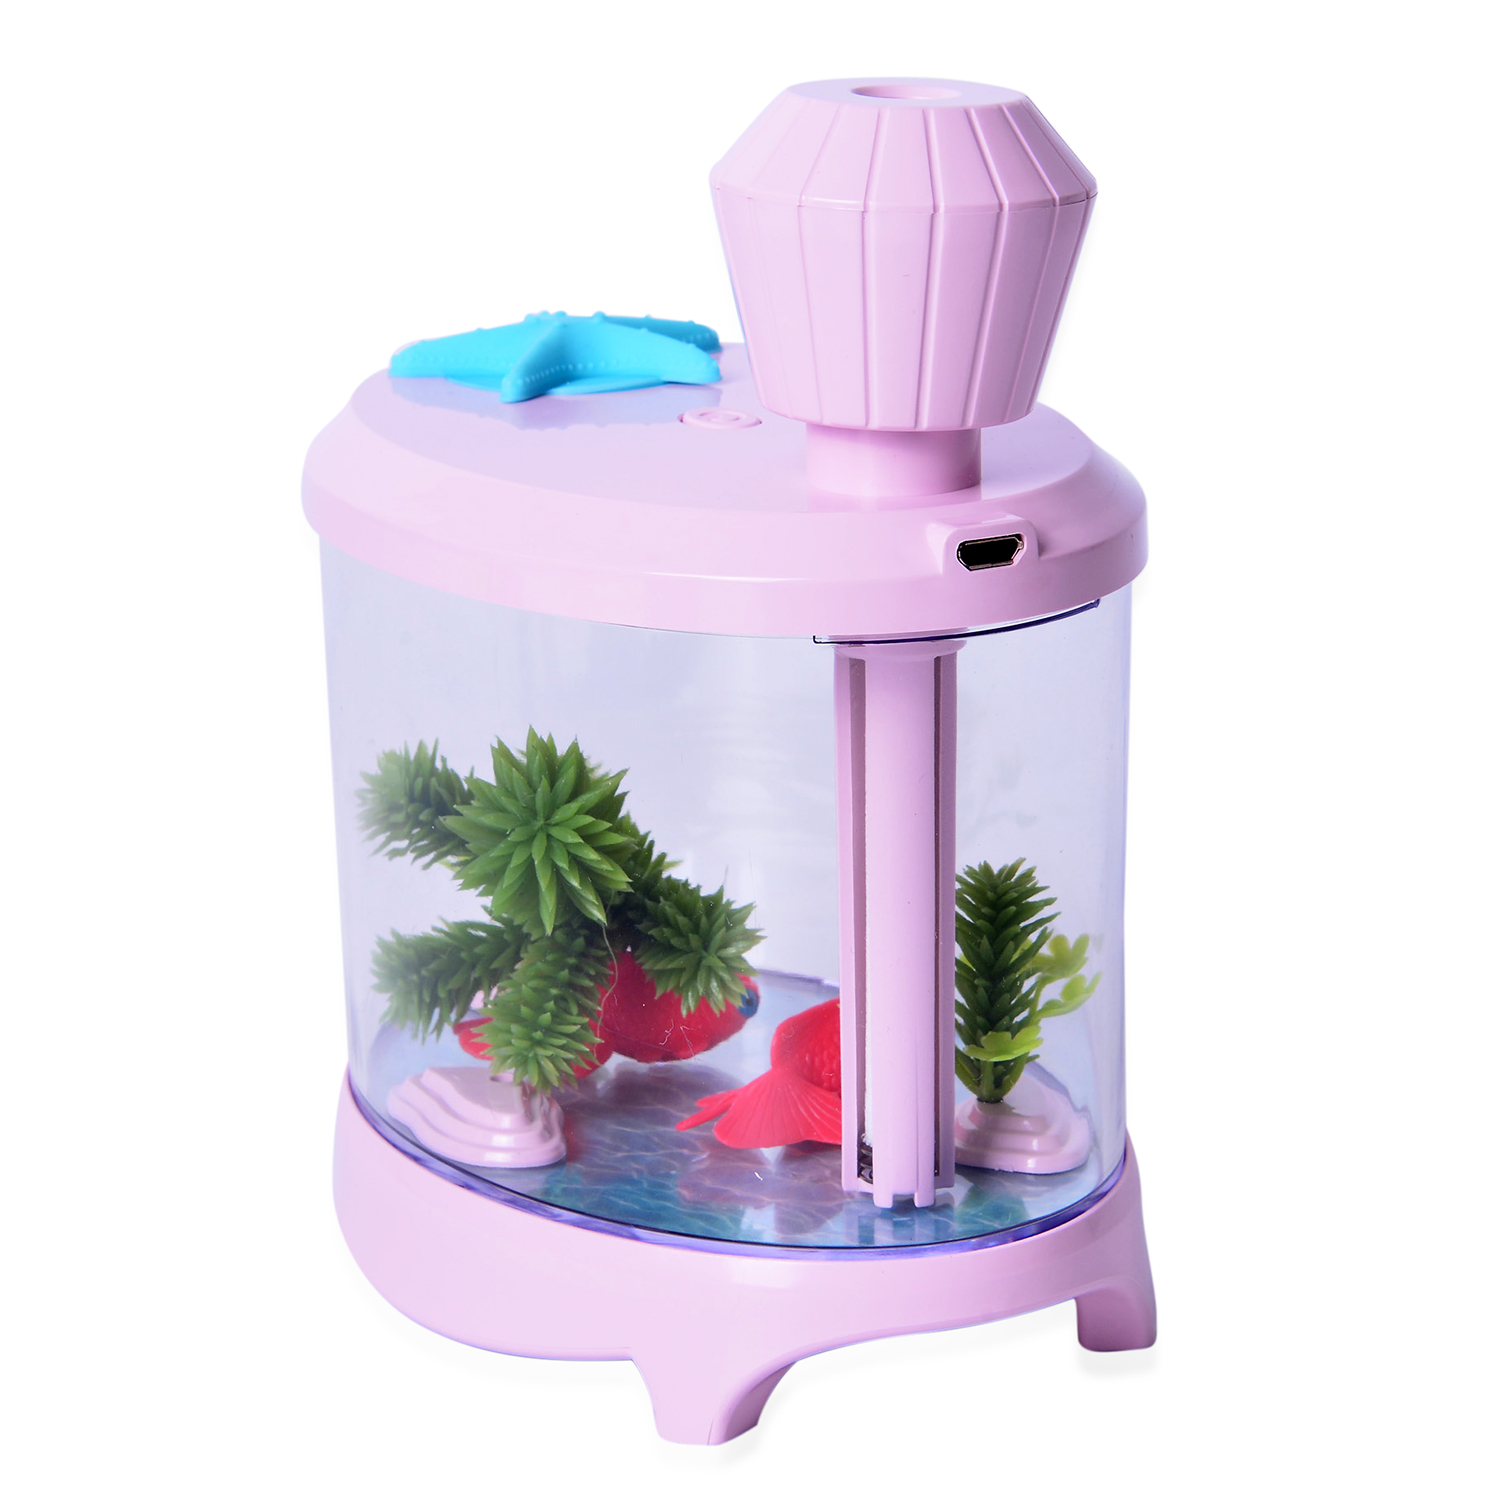 Pink humidifier fish tank with light 5x3x5 in home for Pink fish tank